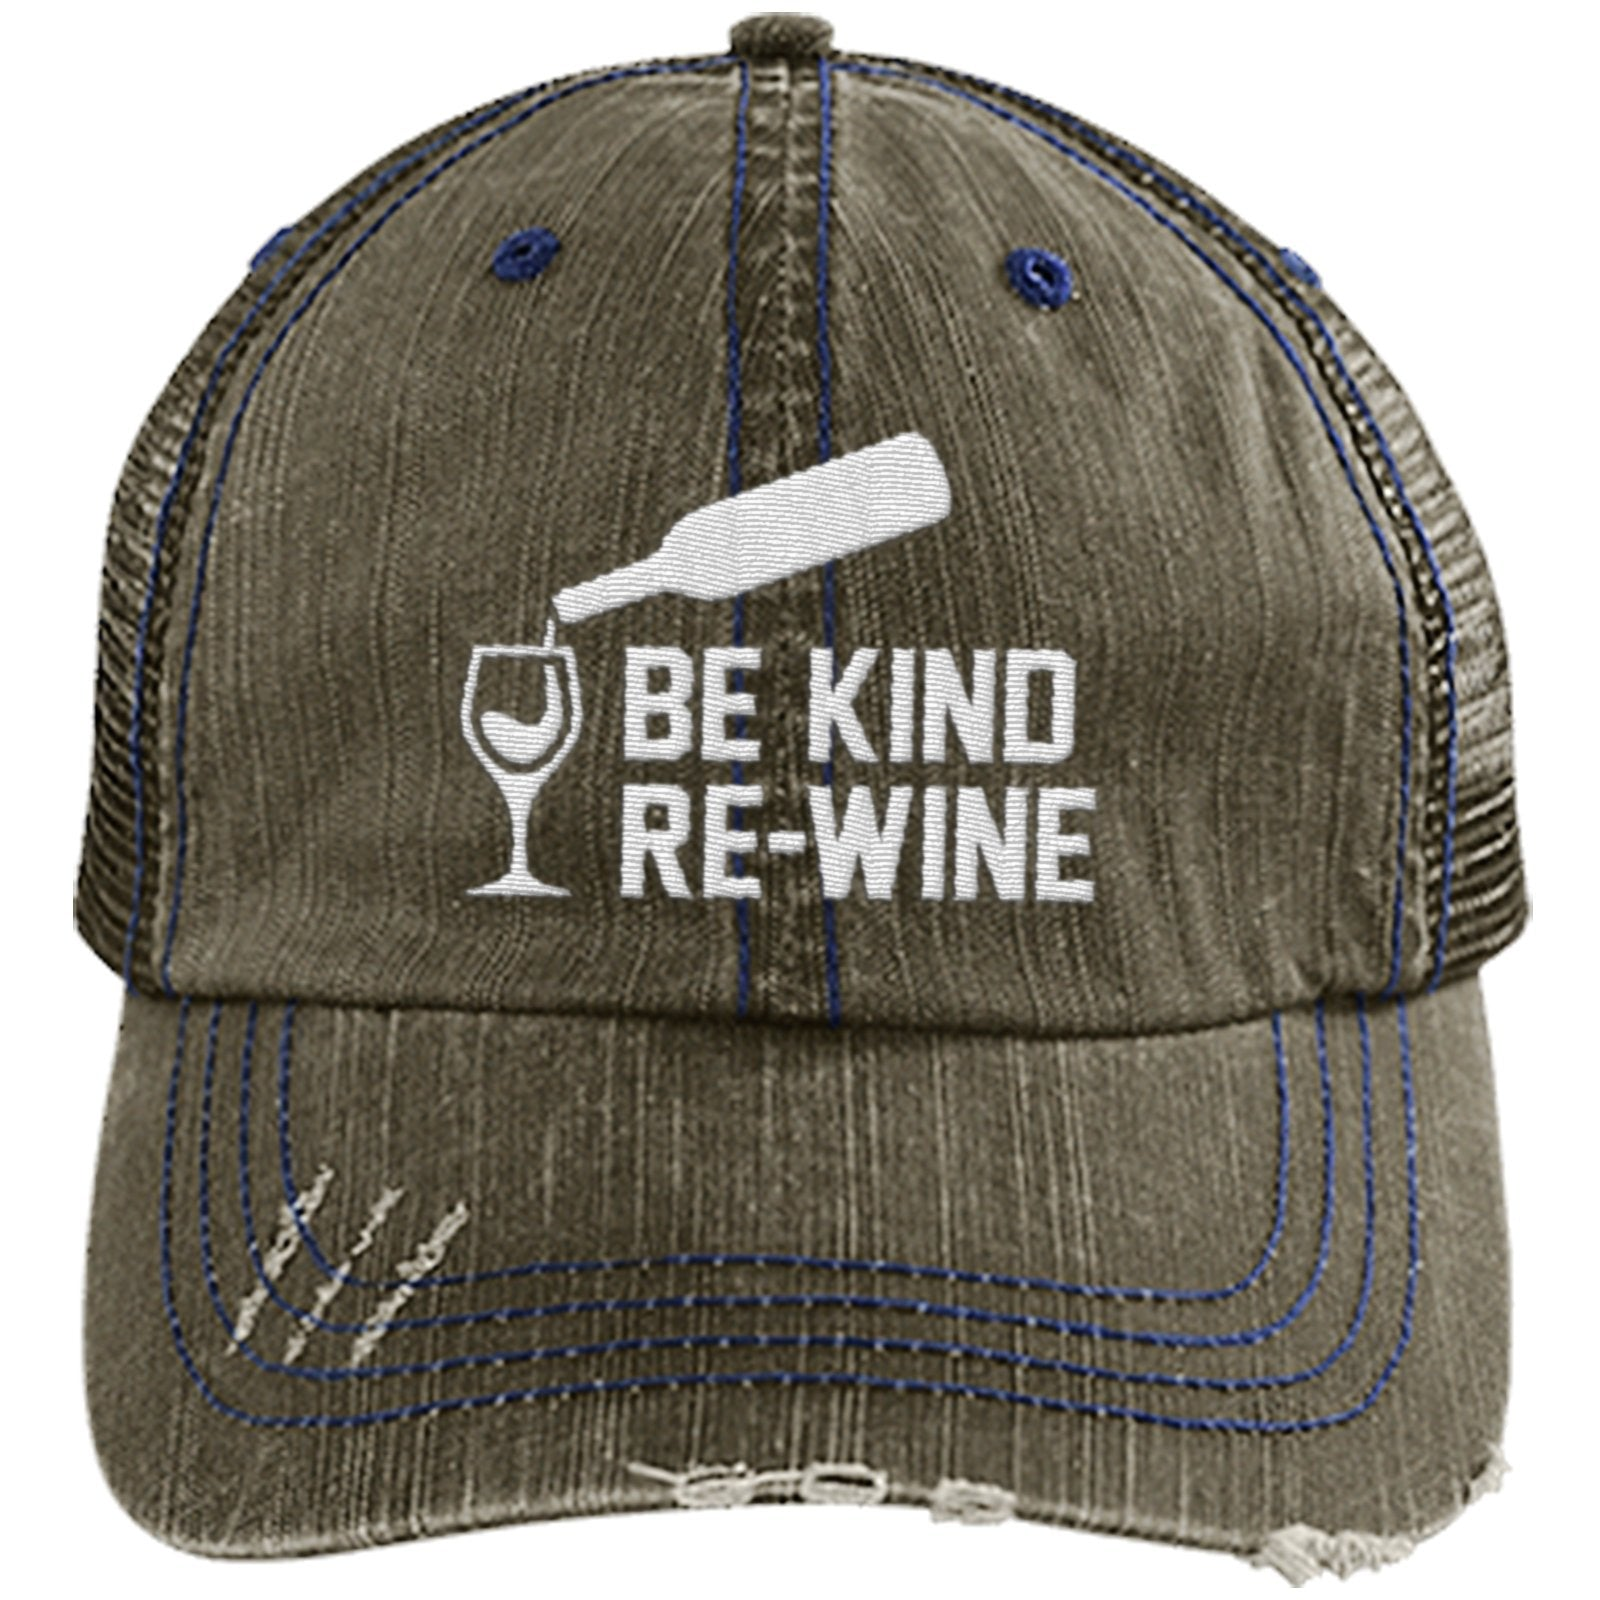 Be Kind Re-Wine - Distressed Trucker Cap (Mesh Back)